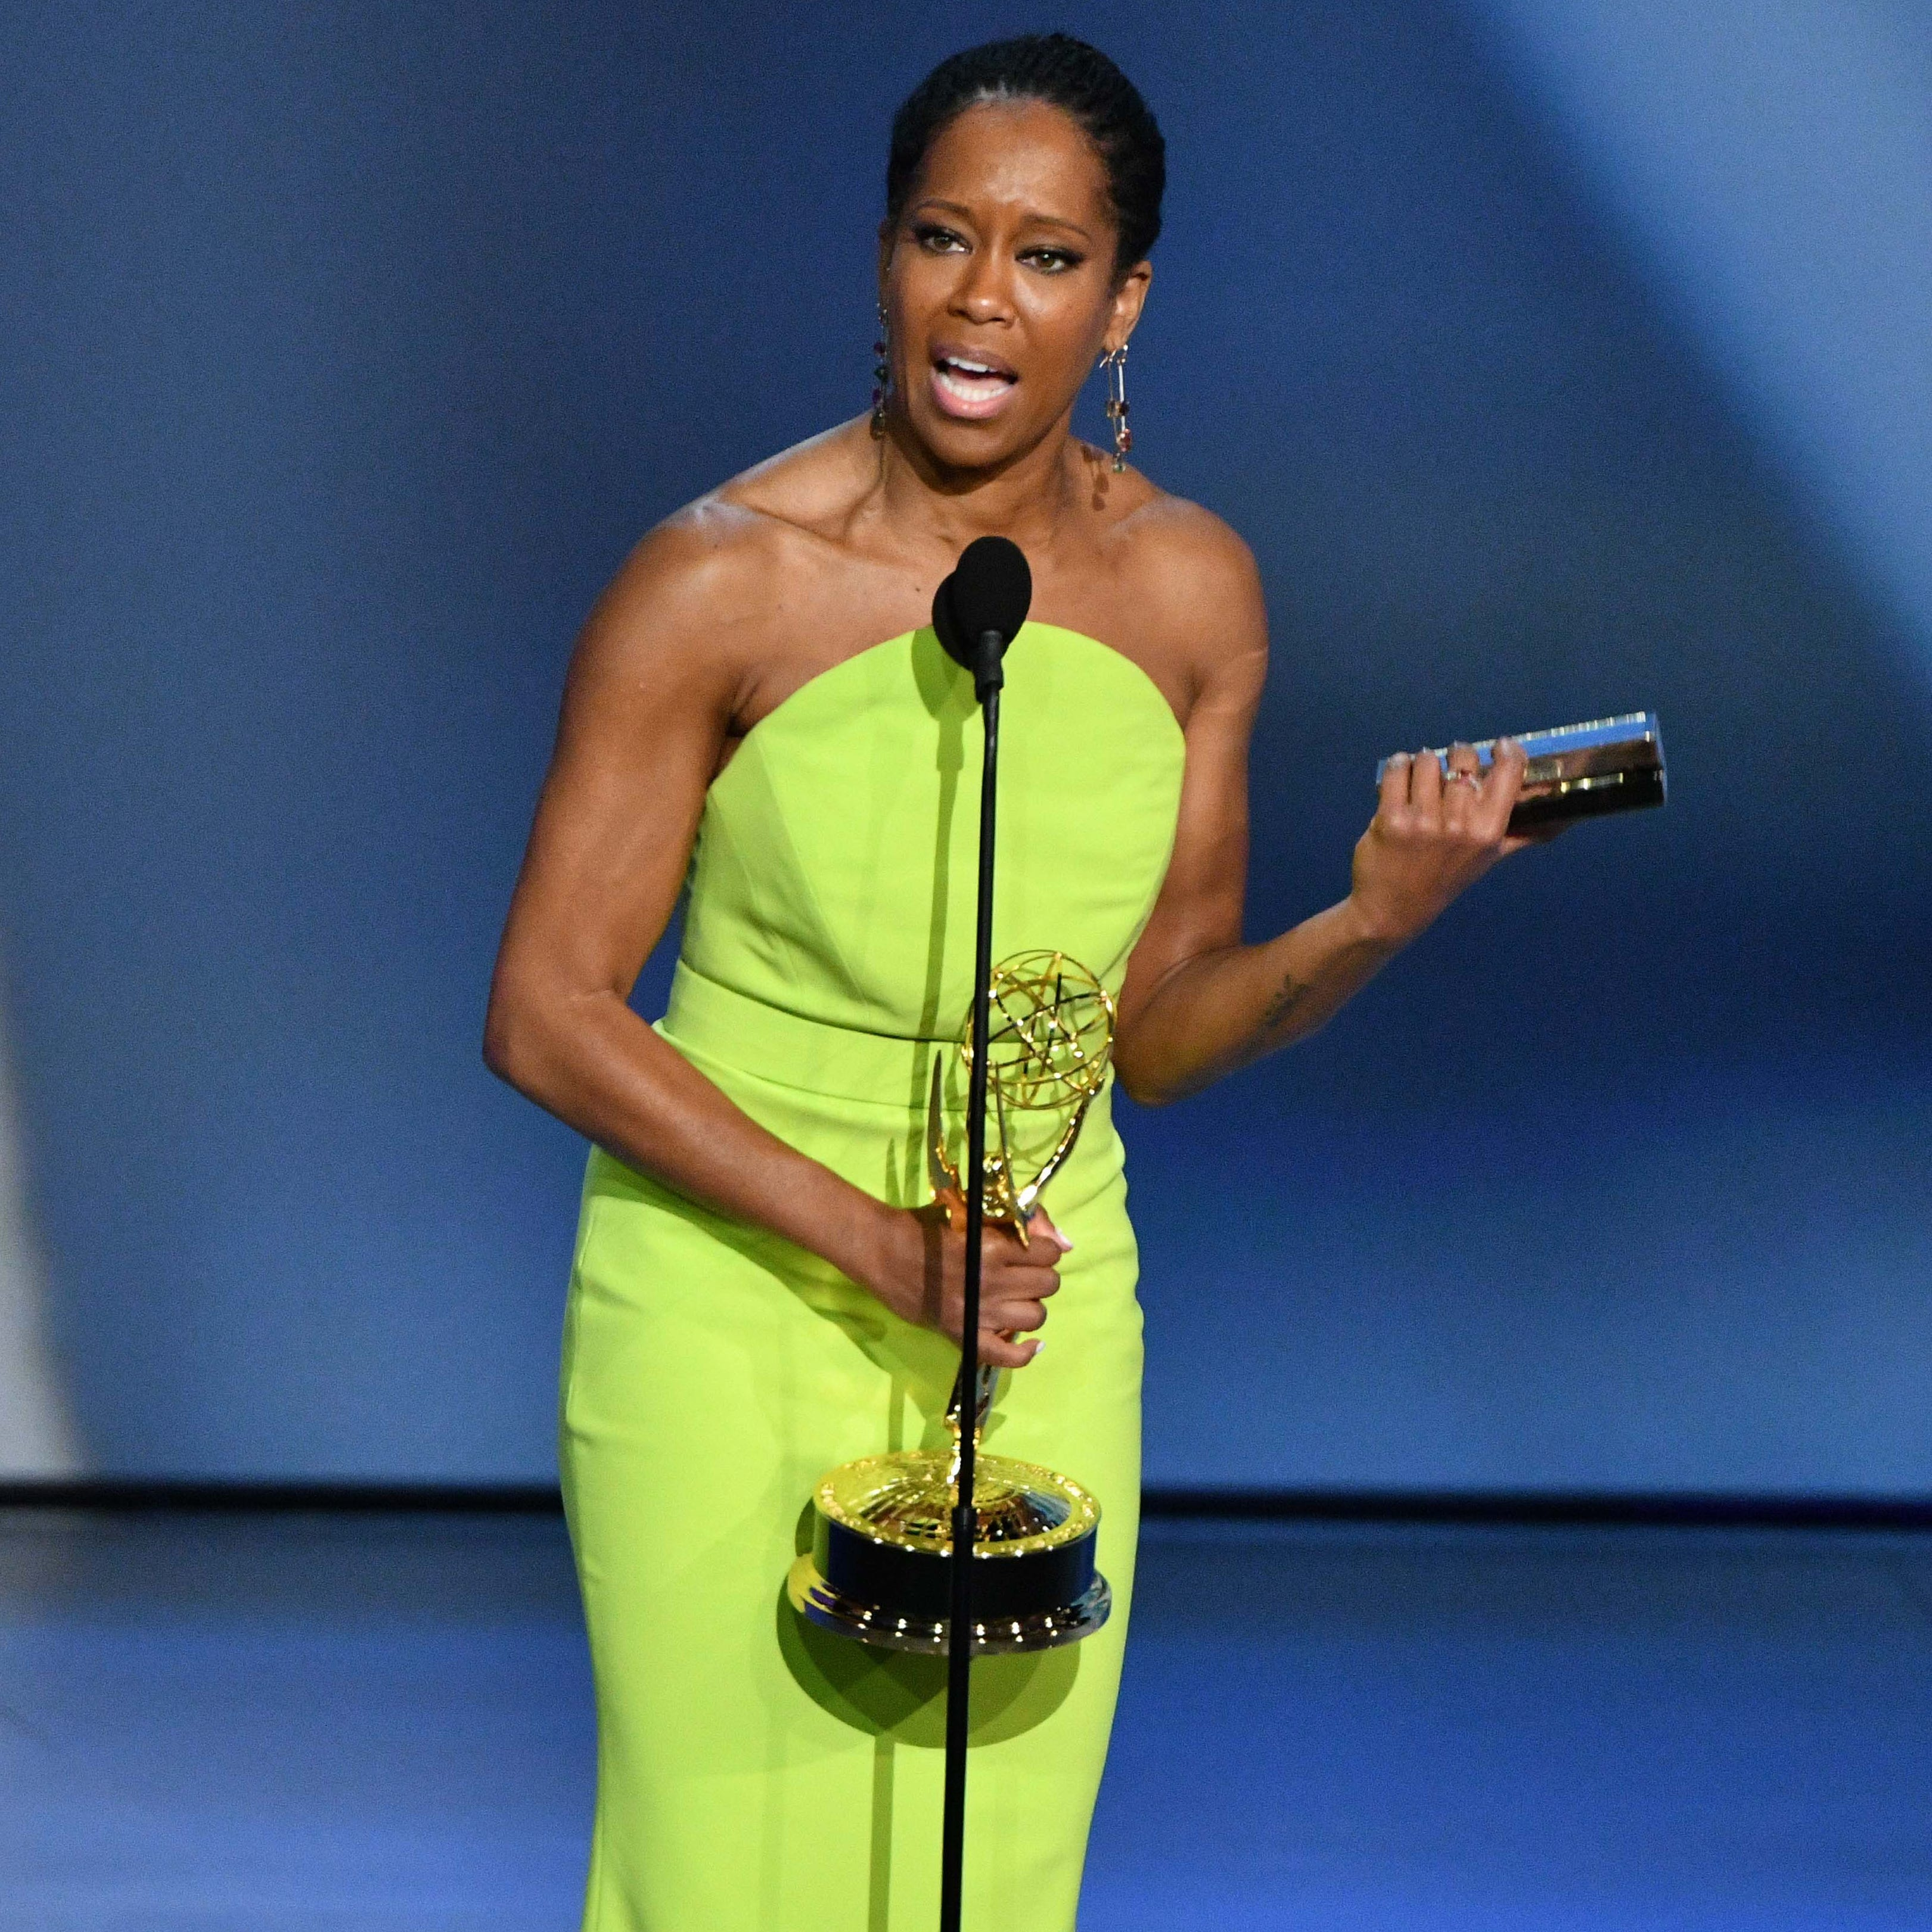 Cincinnati native Regina King wins Emmy for Netflix's 'Seven Seconds'